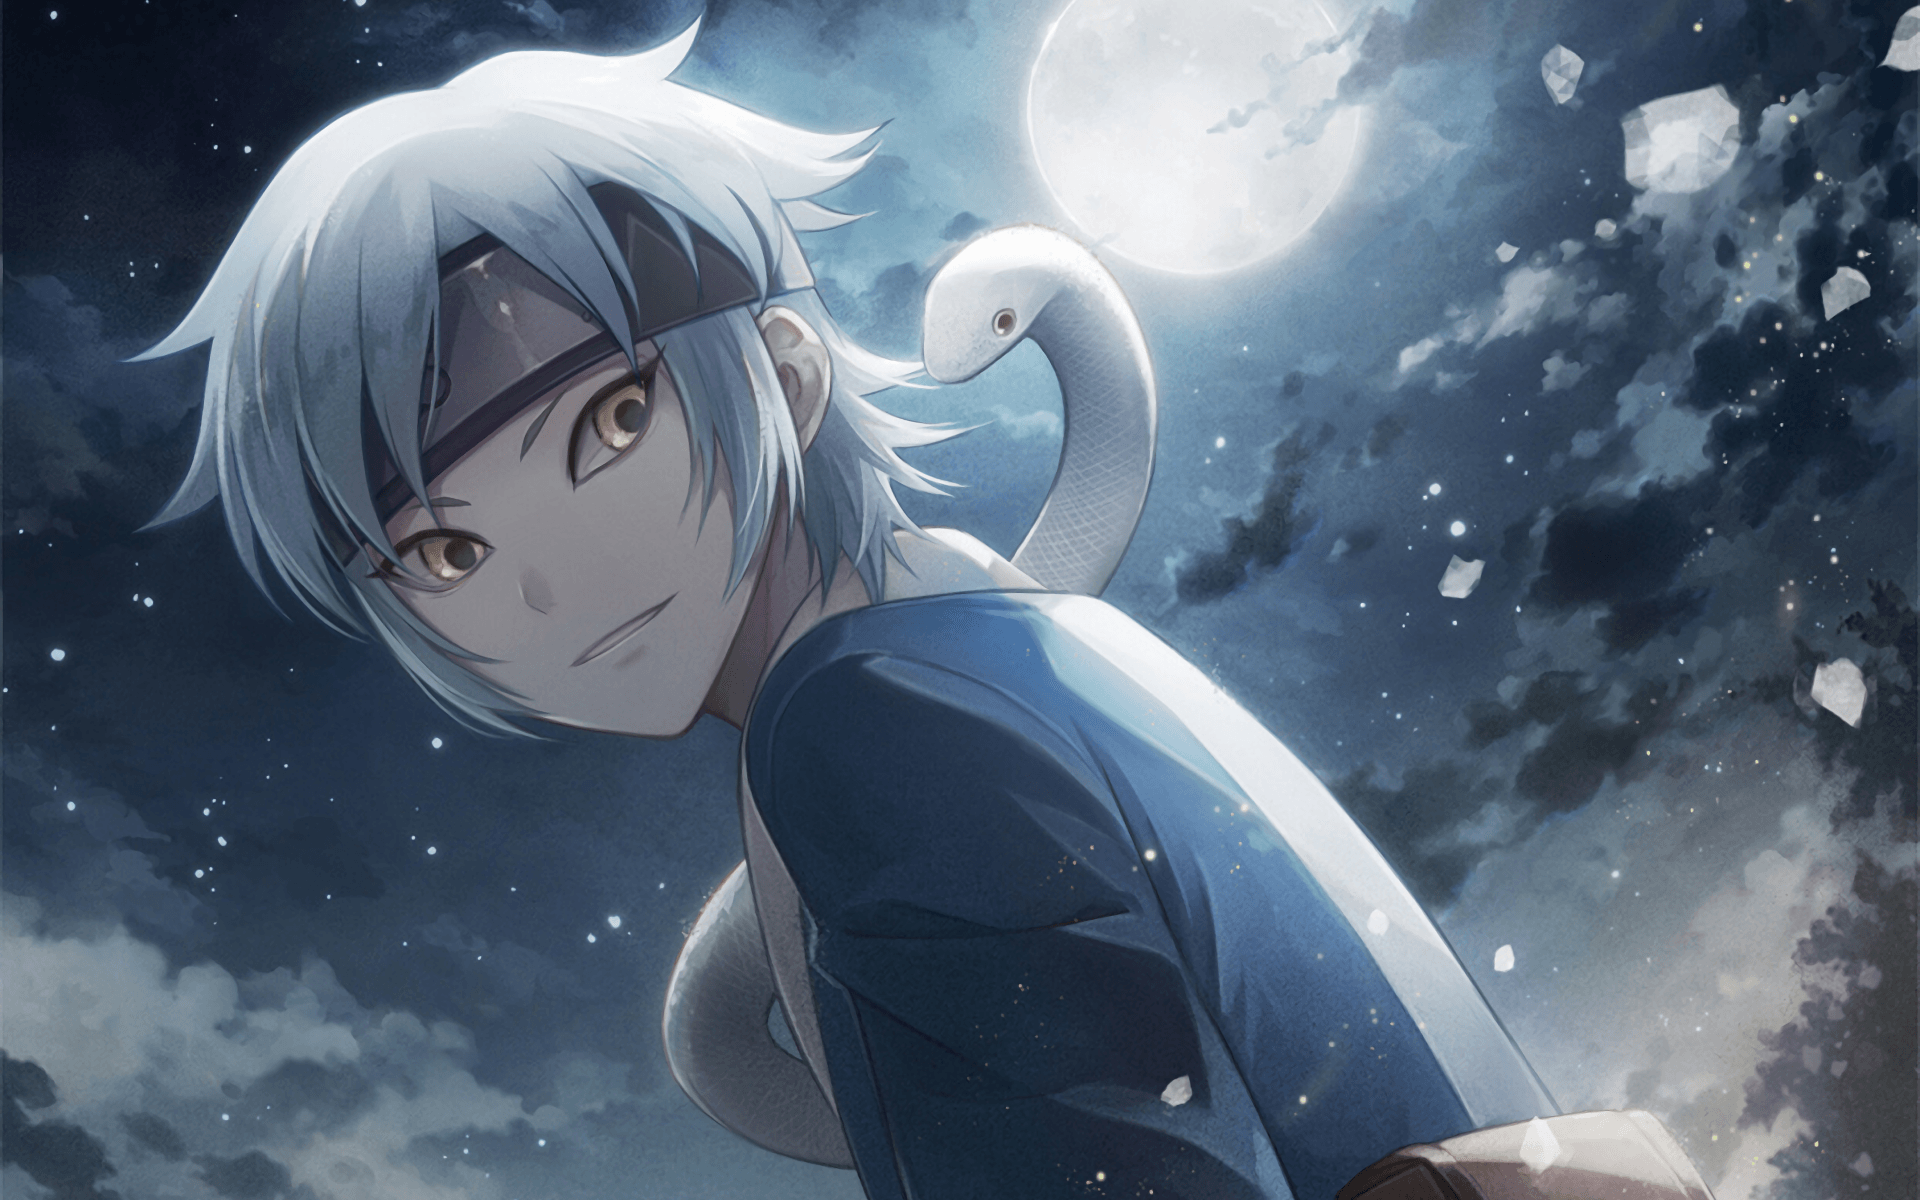 Mitsuki Boruto Wallpapers Top Free Mitsuki Boruto Backgrounds Wallpaperaccess